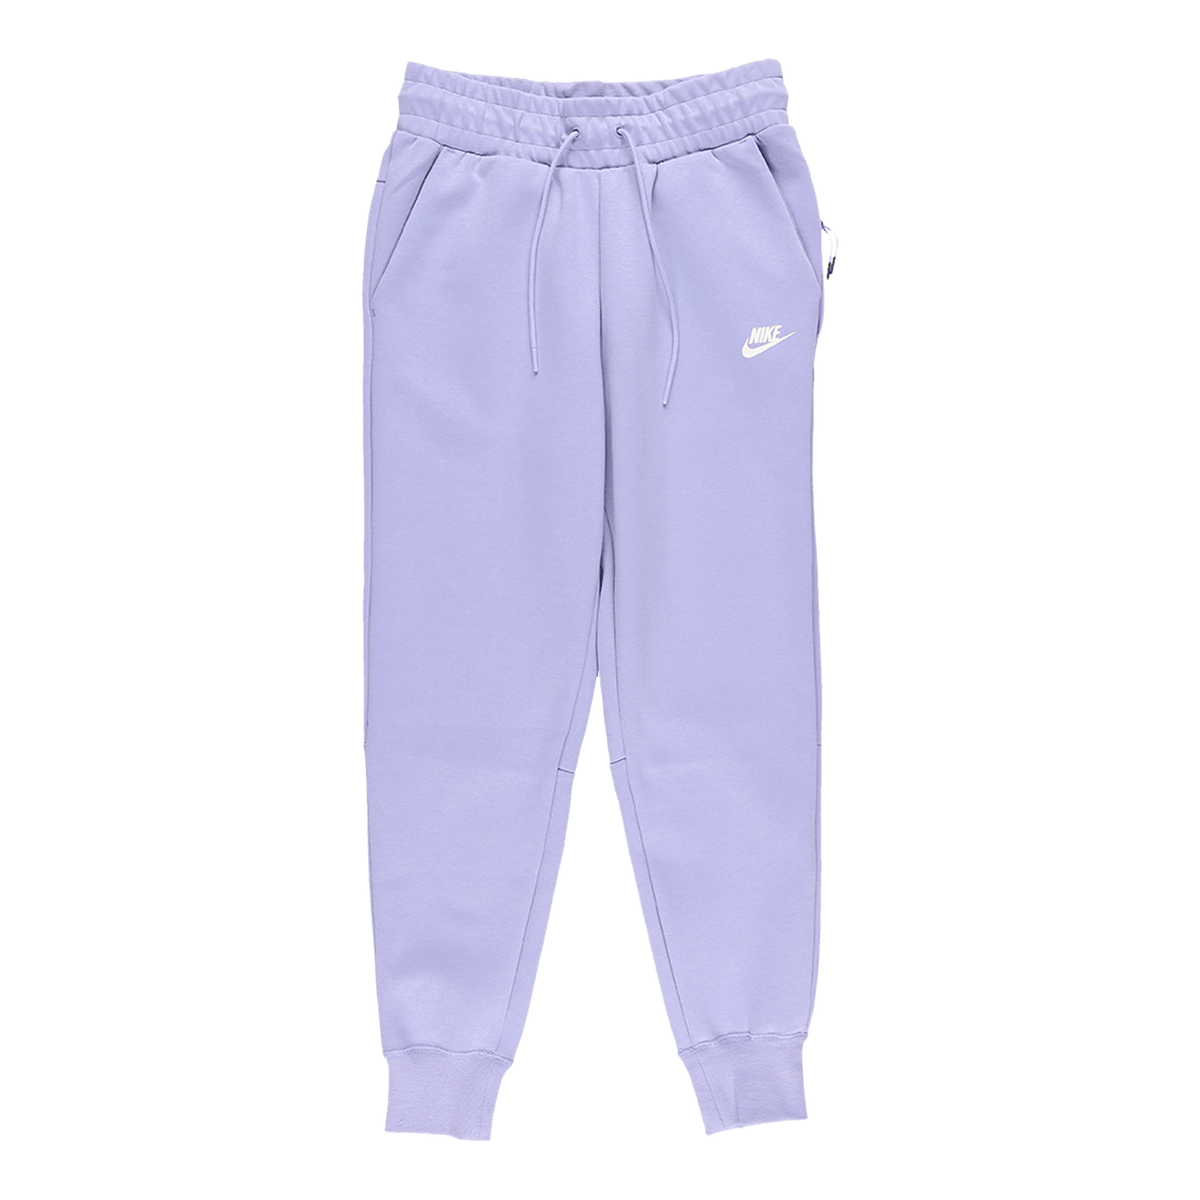 Nike Women's Tech Fleece Pants  - XHIBITION